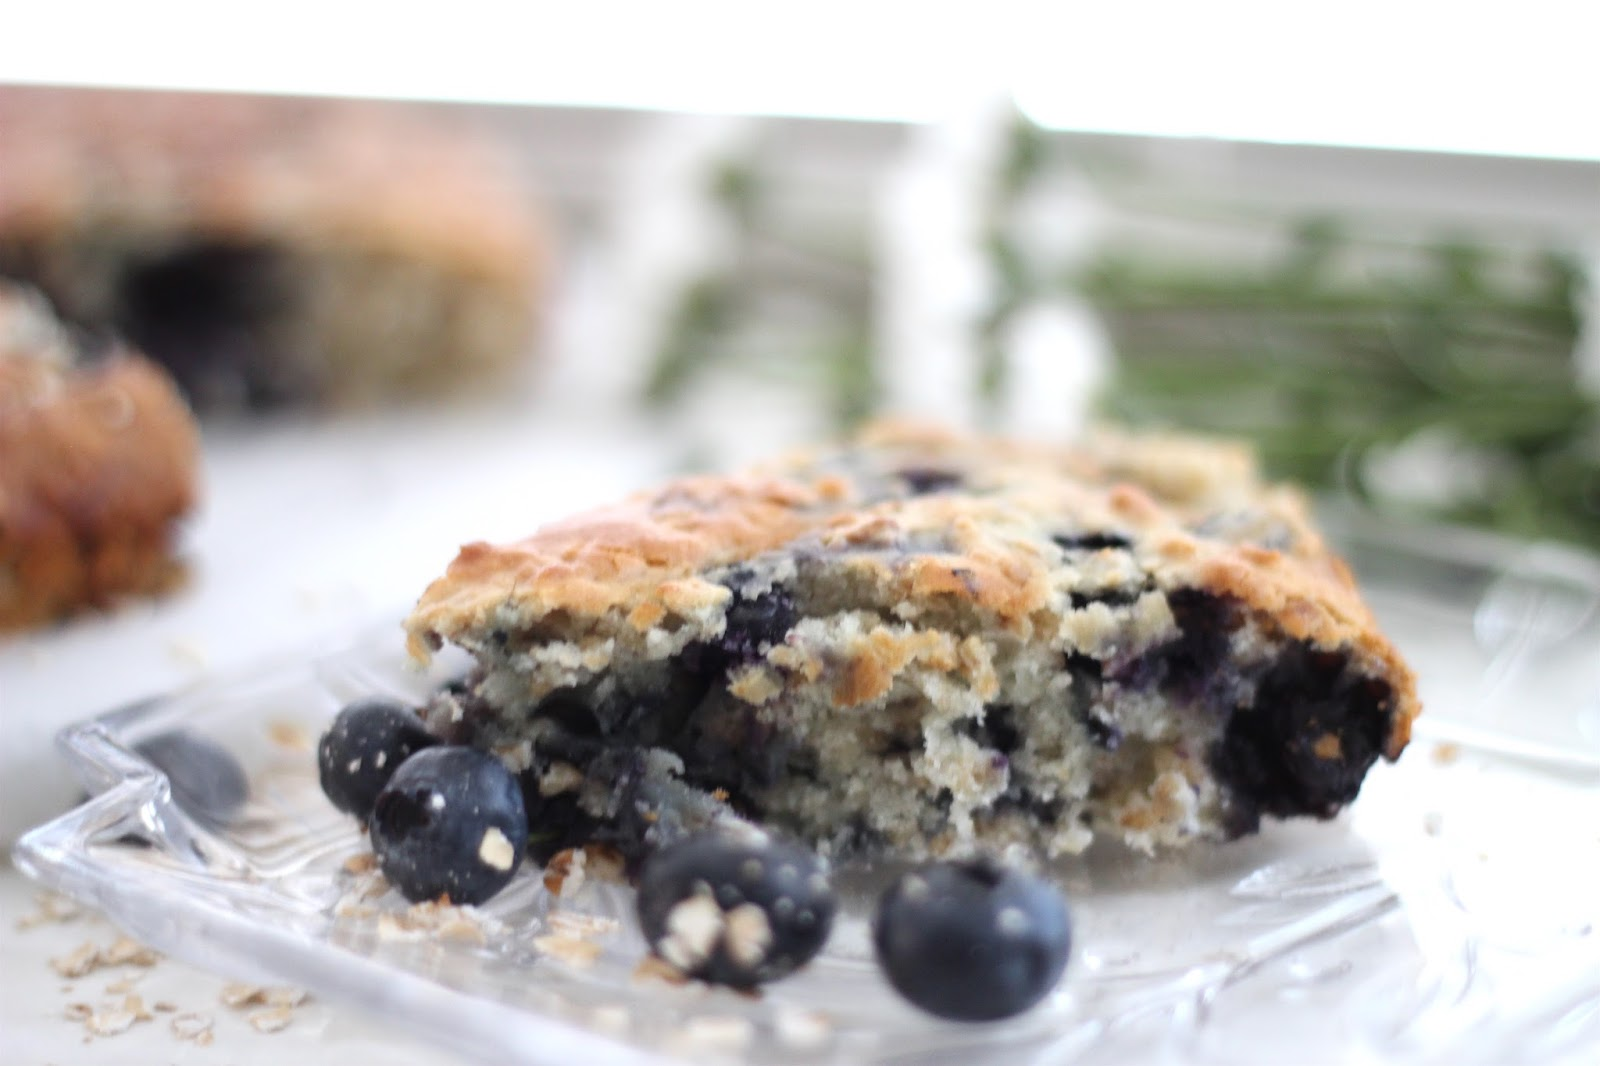 Blueberry Oatmeal Breakfast Cake | Footnotes and Finds